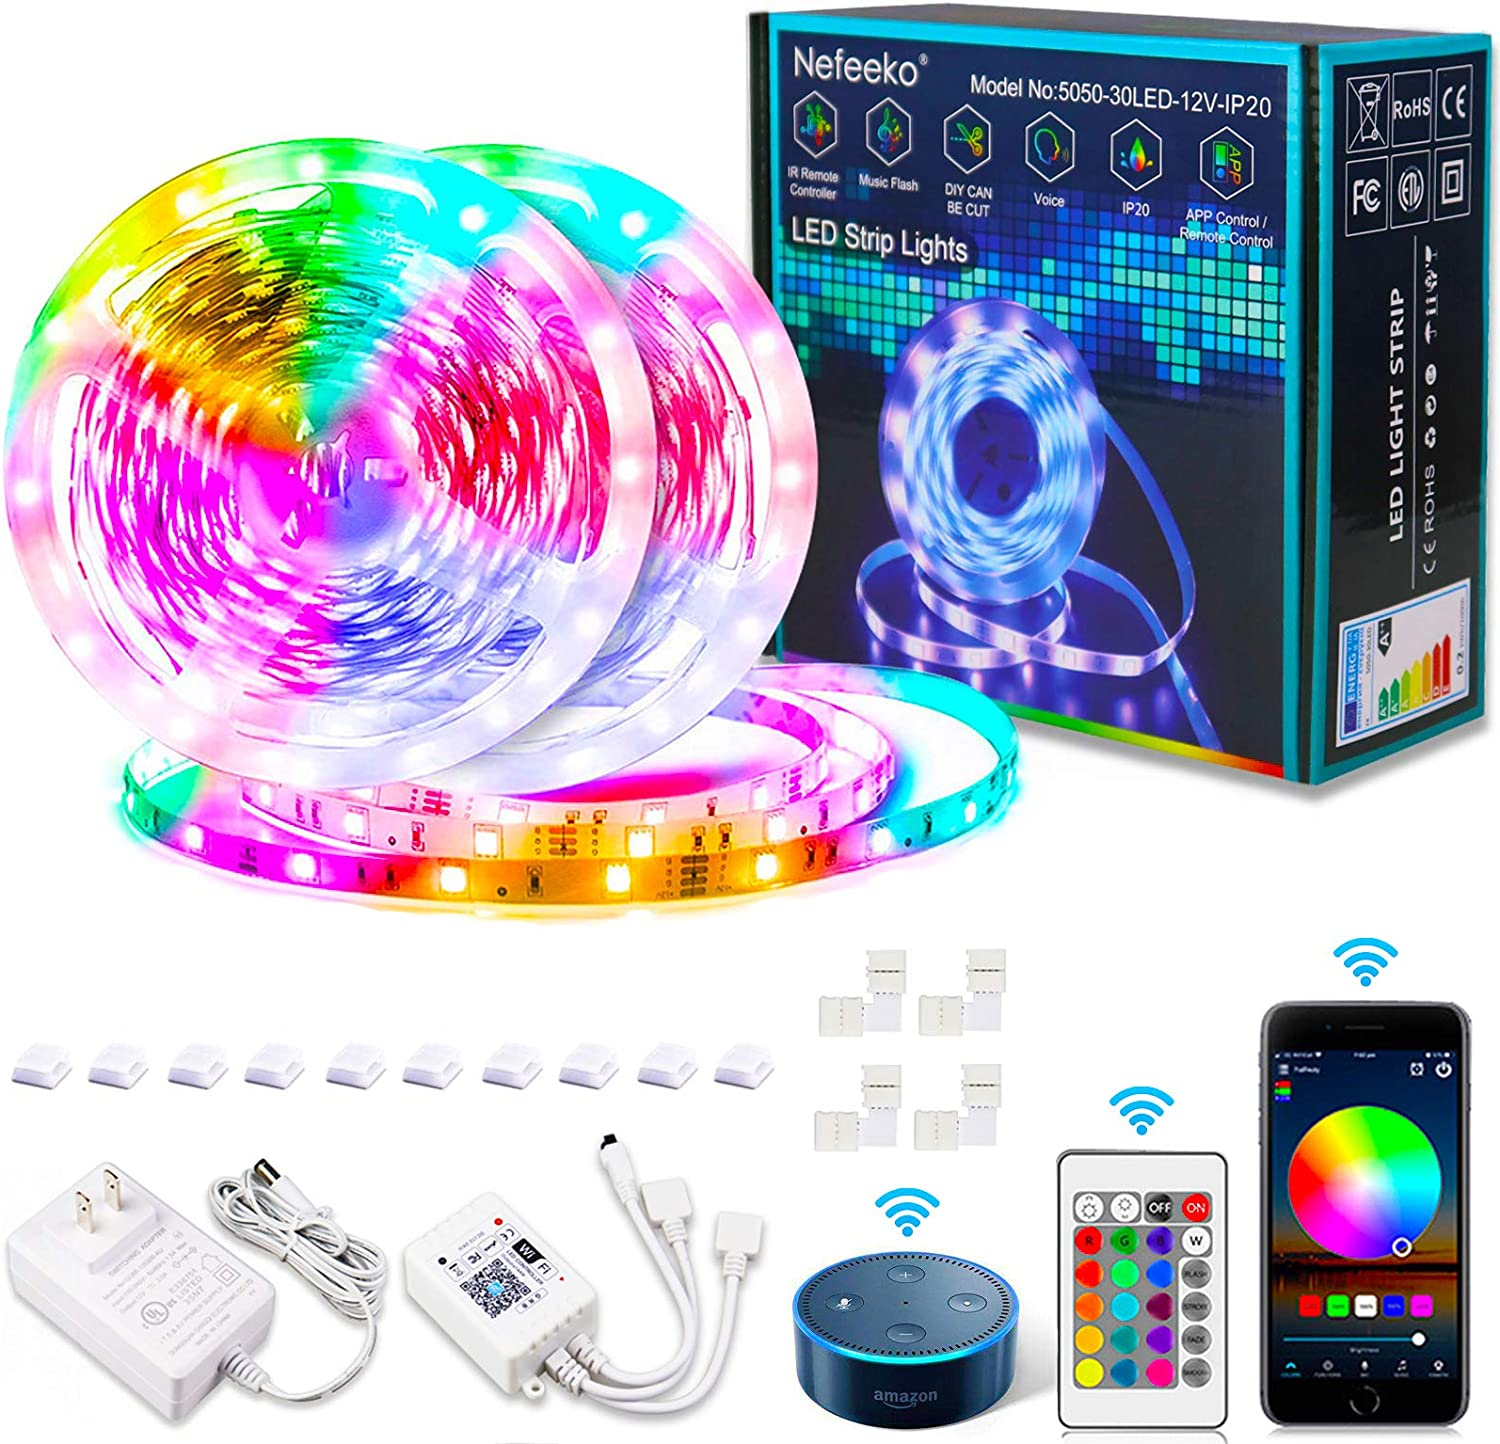 Nefeeko Led Strip Lights, 32.8ft Smart Led Lights with APP WIFI Voice IR Remote Control, RGB Color Changing SMD5050 300 LED Lights DIY Kit for Bedroom Decoration, Work with Alexa, Google Assistant (C)